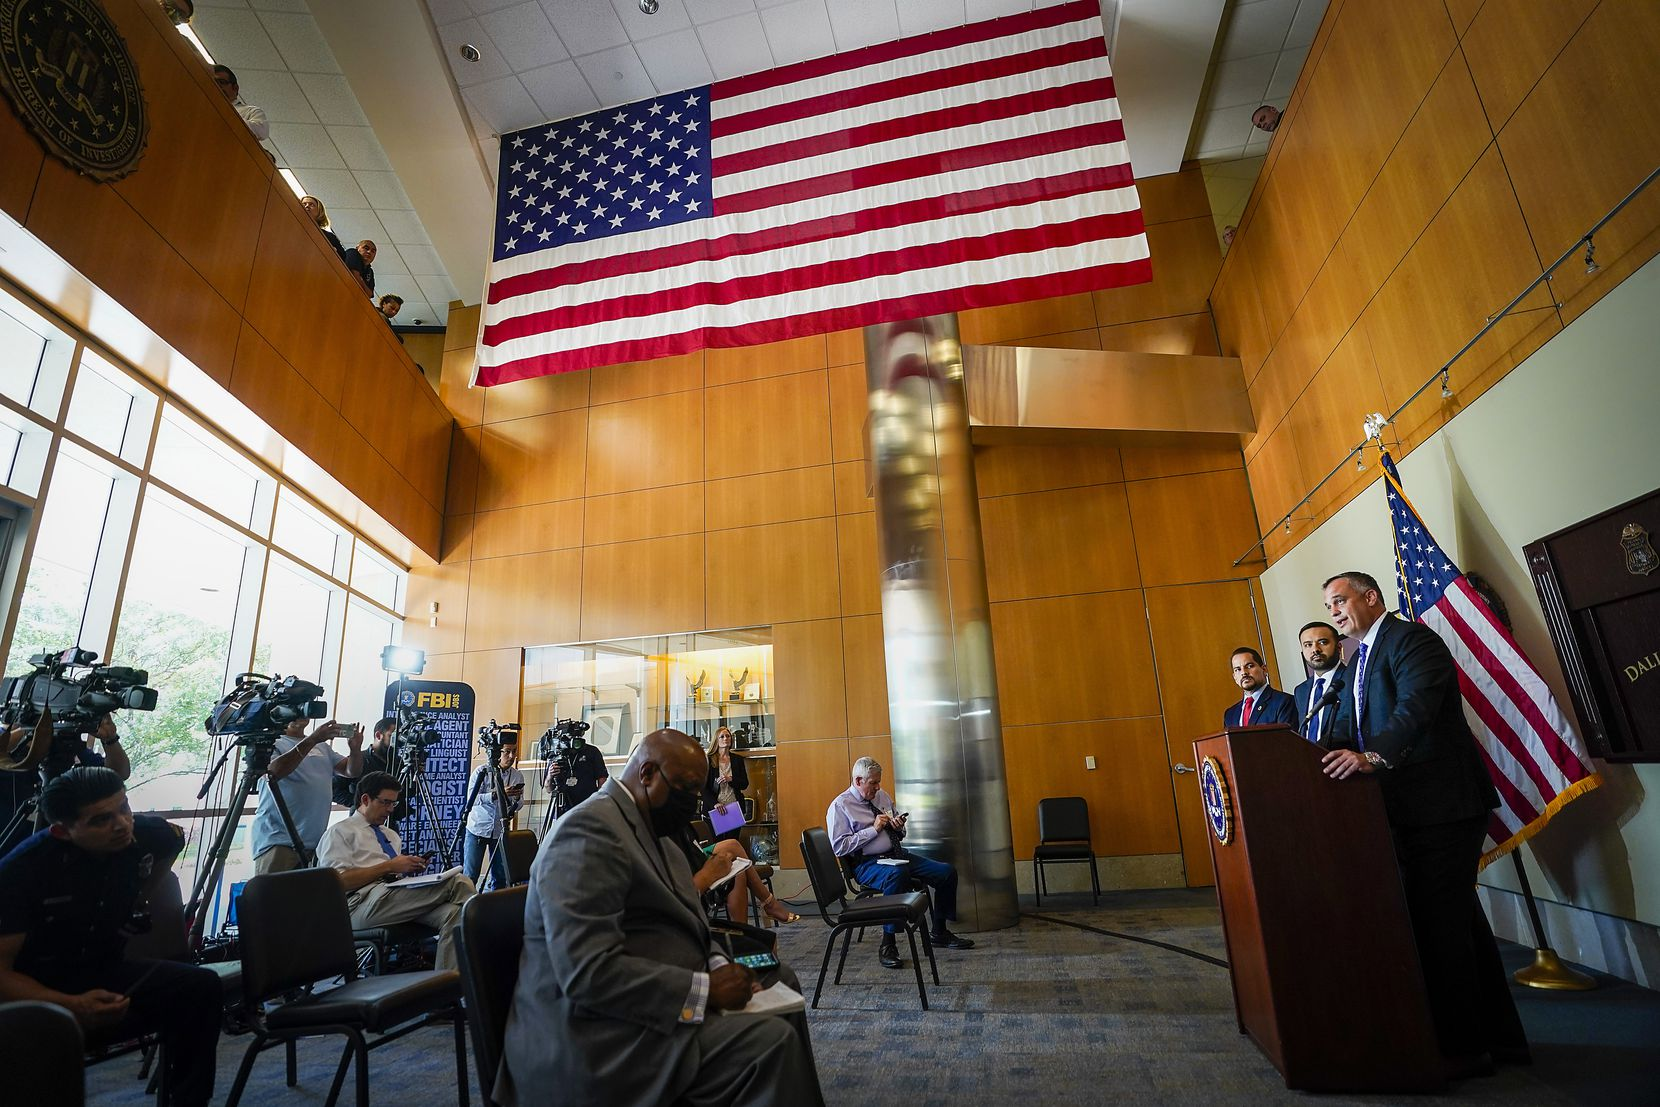 FBI Special Agent in Charge Matthew DeSarno spoke at a news conference Thursday at his agency's Dallas office.